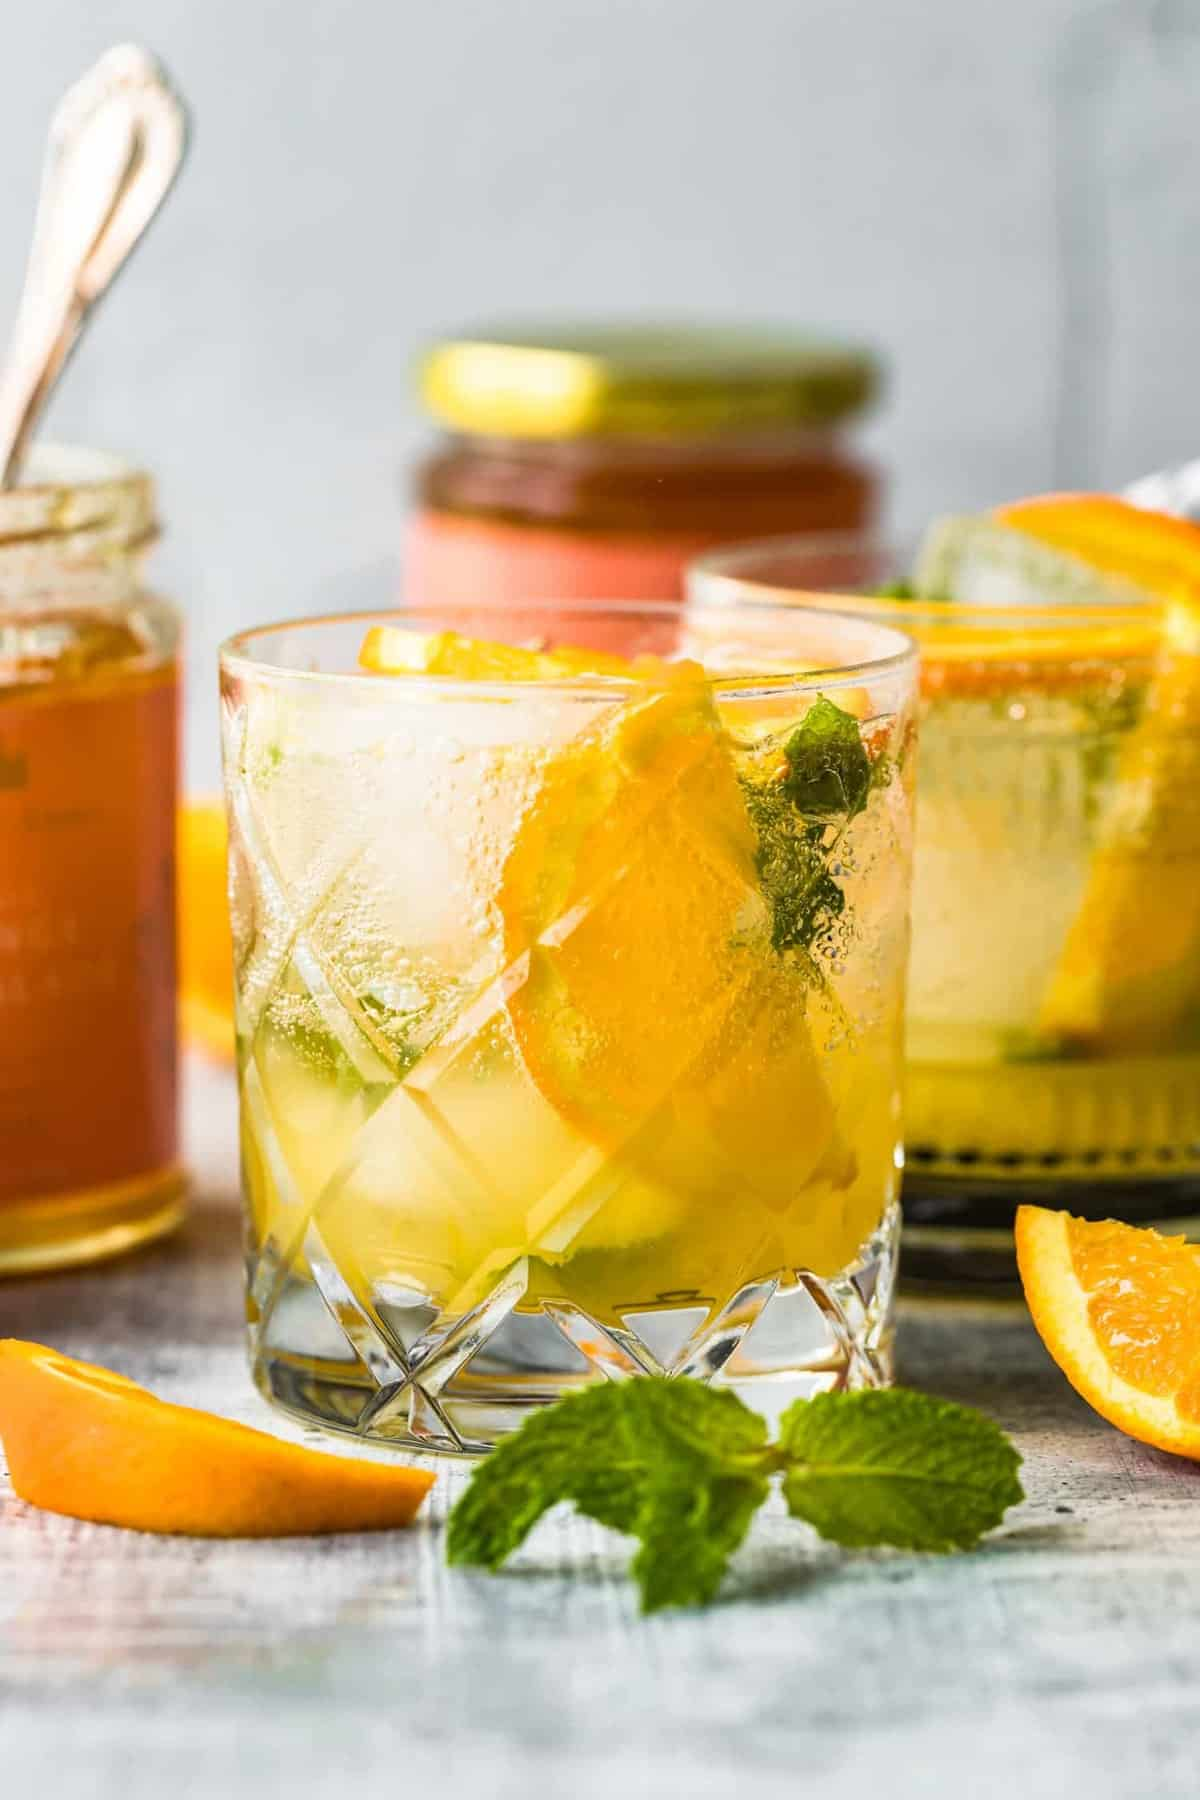 citrus smash cocktail on a table with sliced oranges and mint leaves